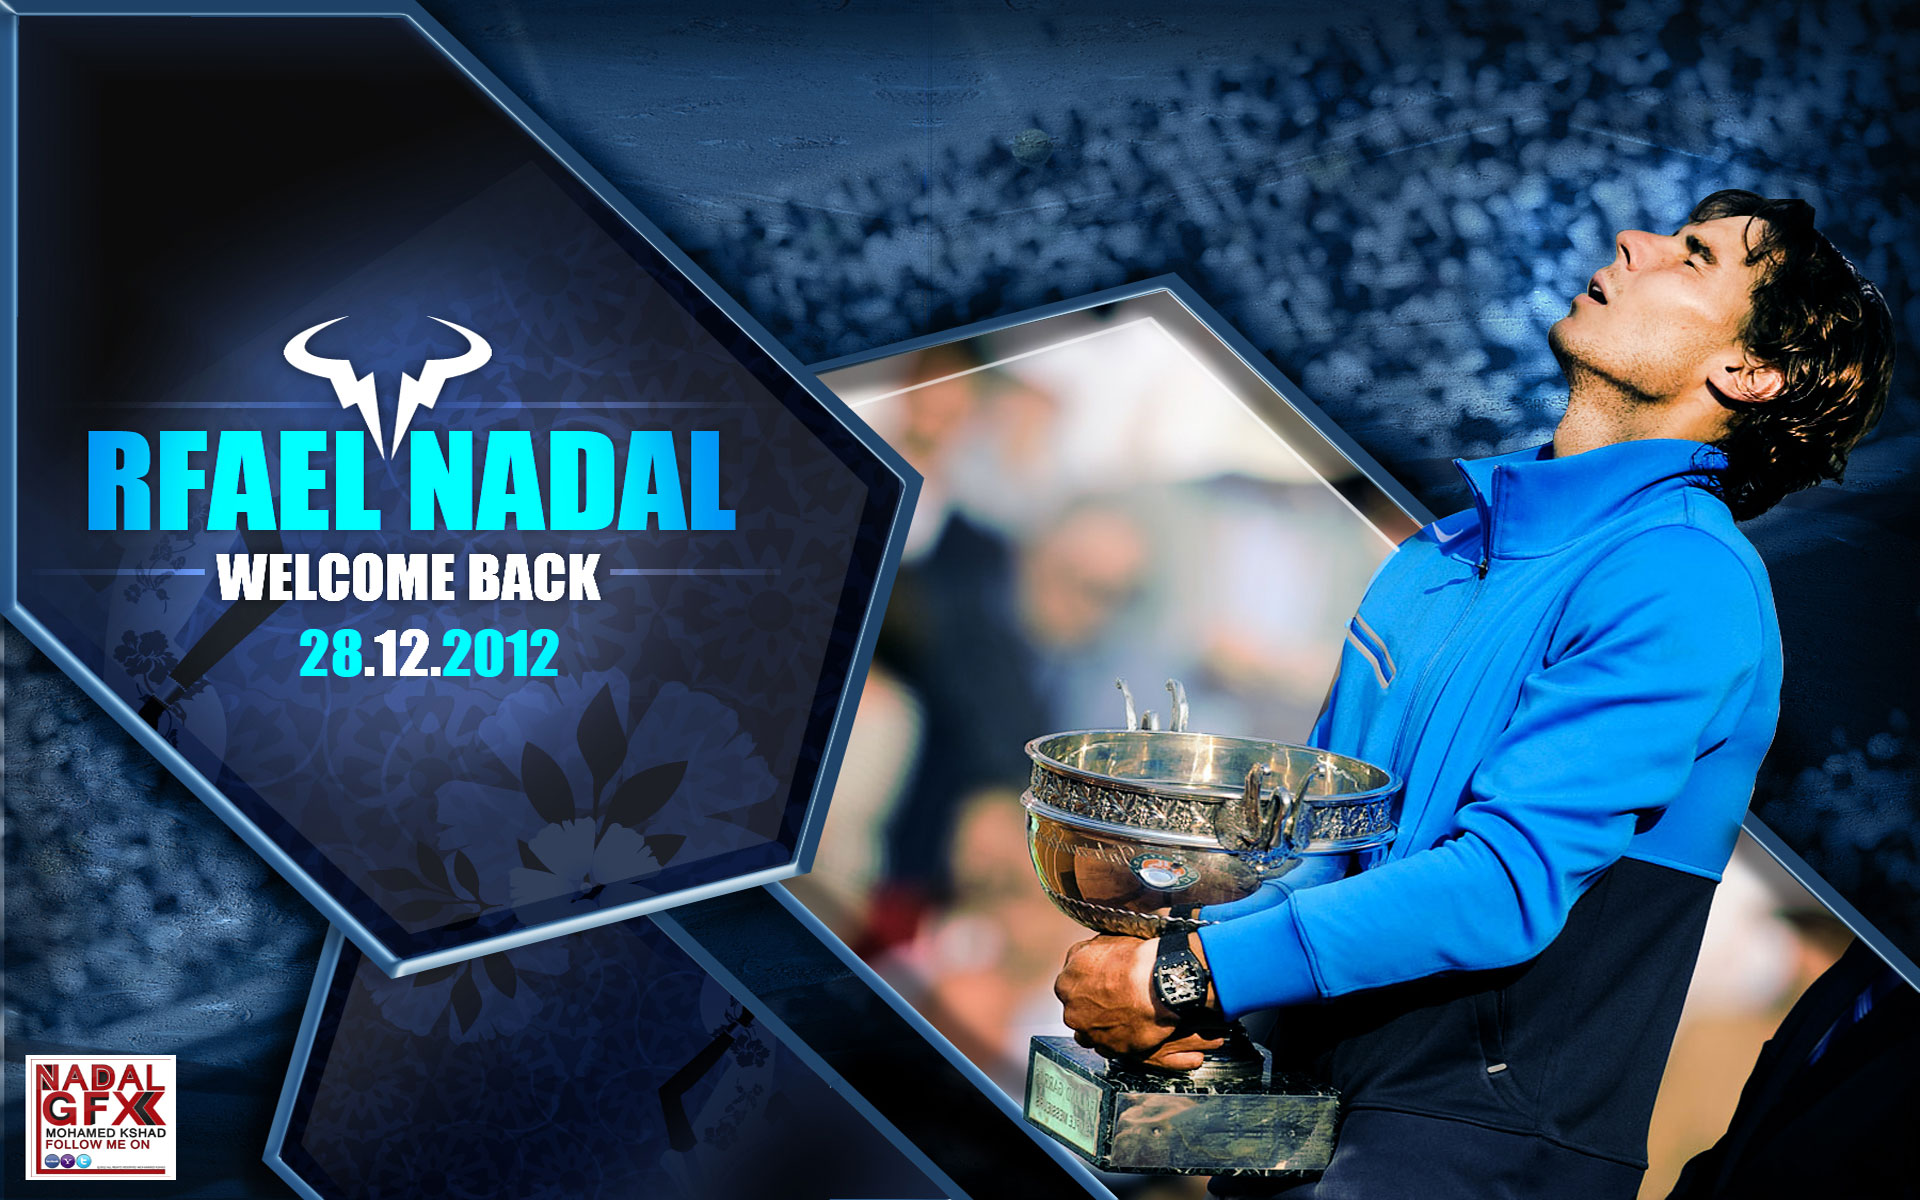 Rafael Nadal Wallpapers   XH9WG5E   4USkY 1920x1200